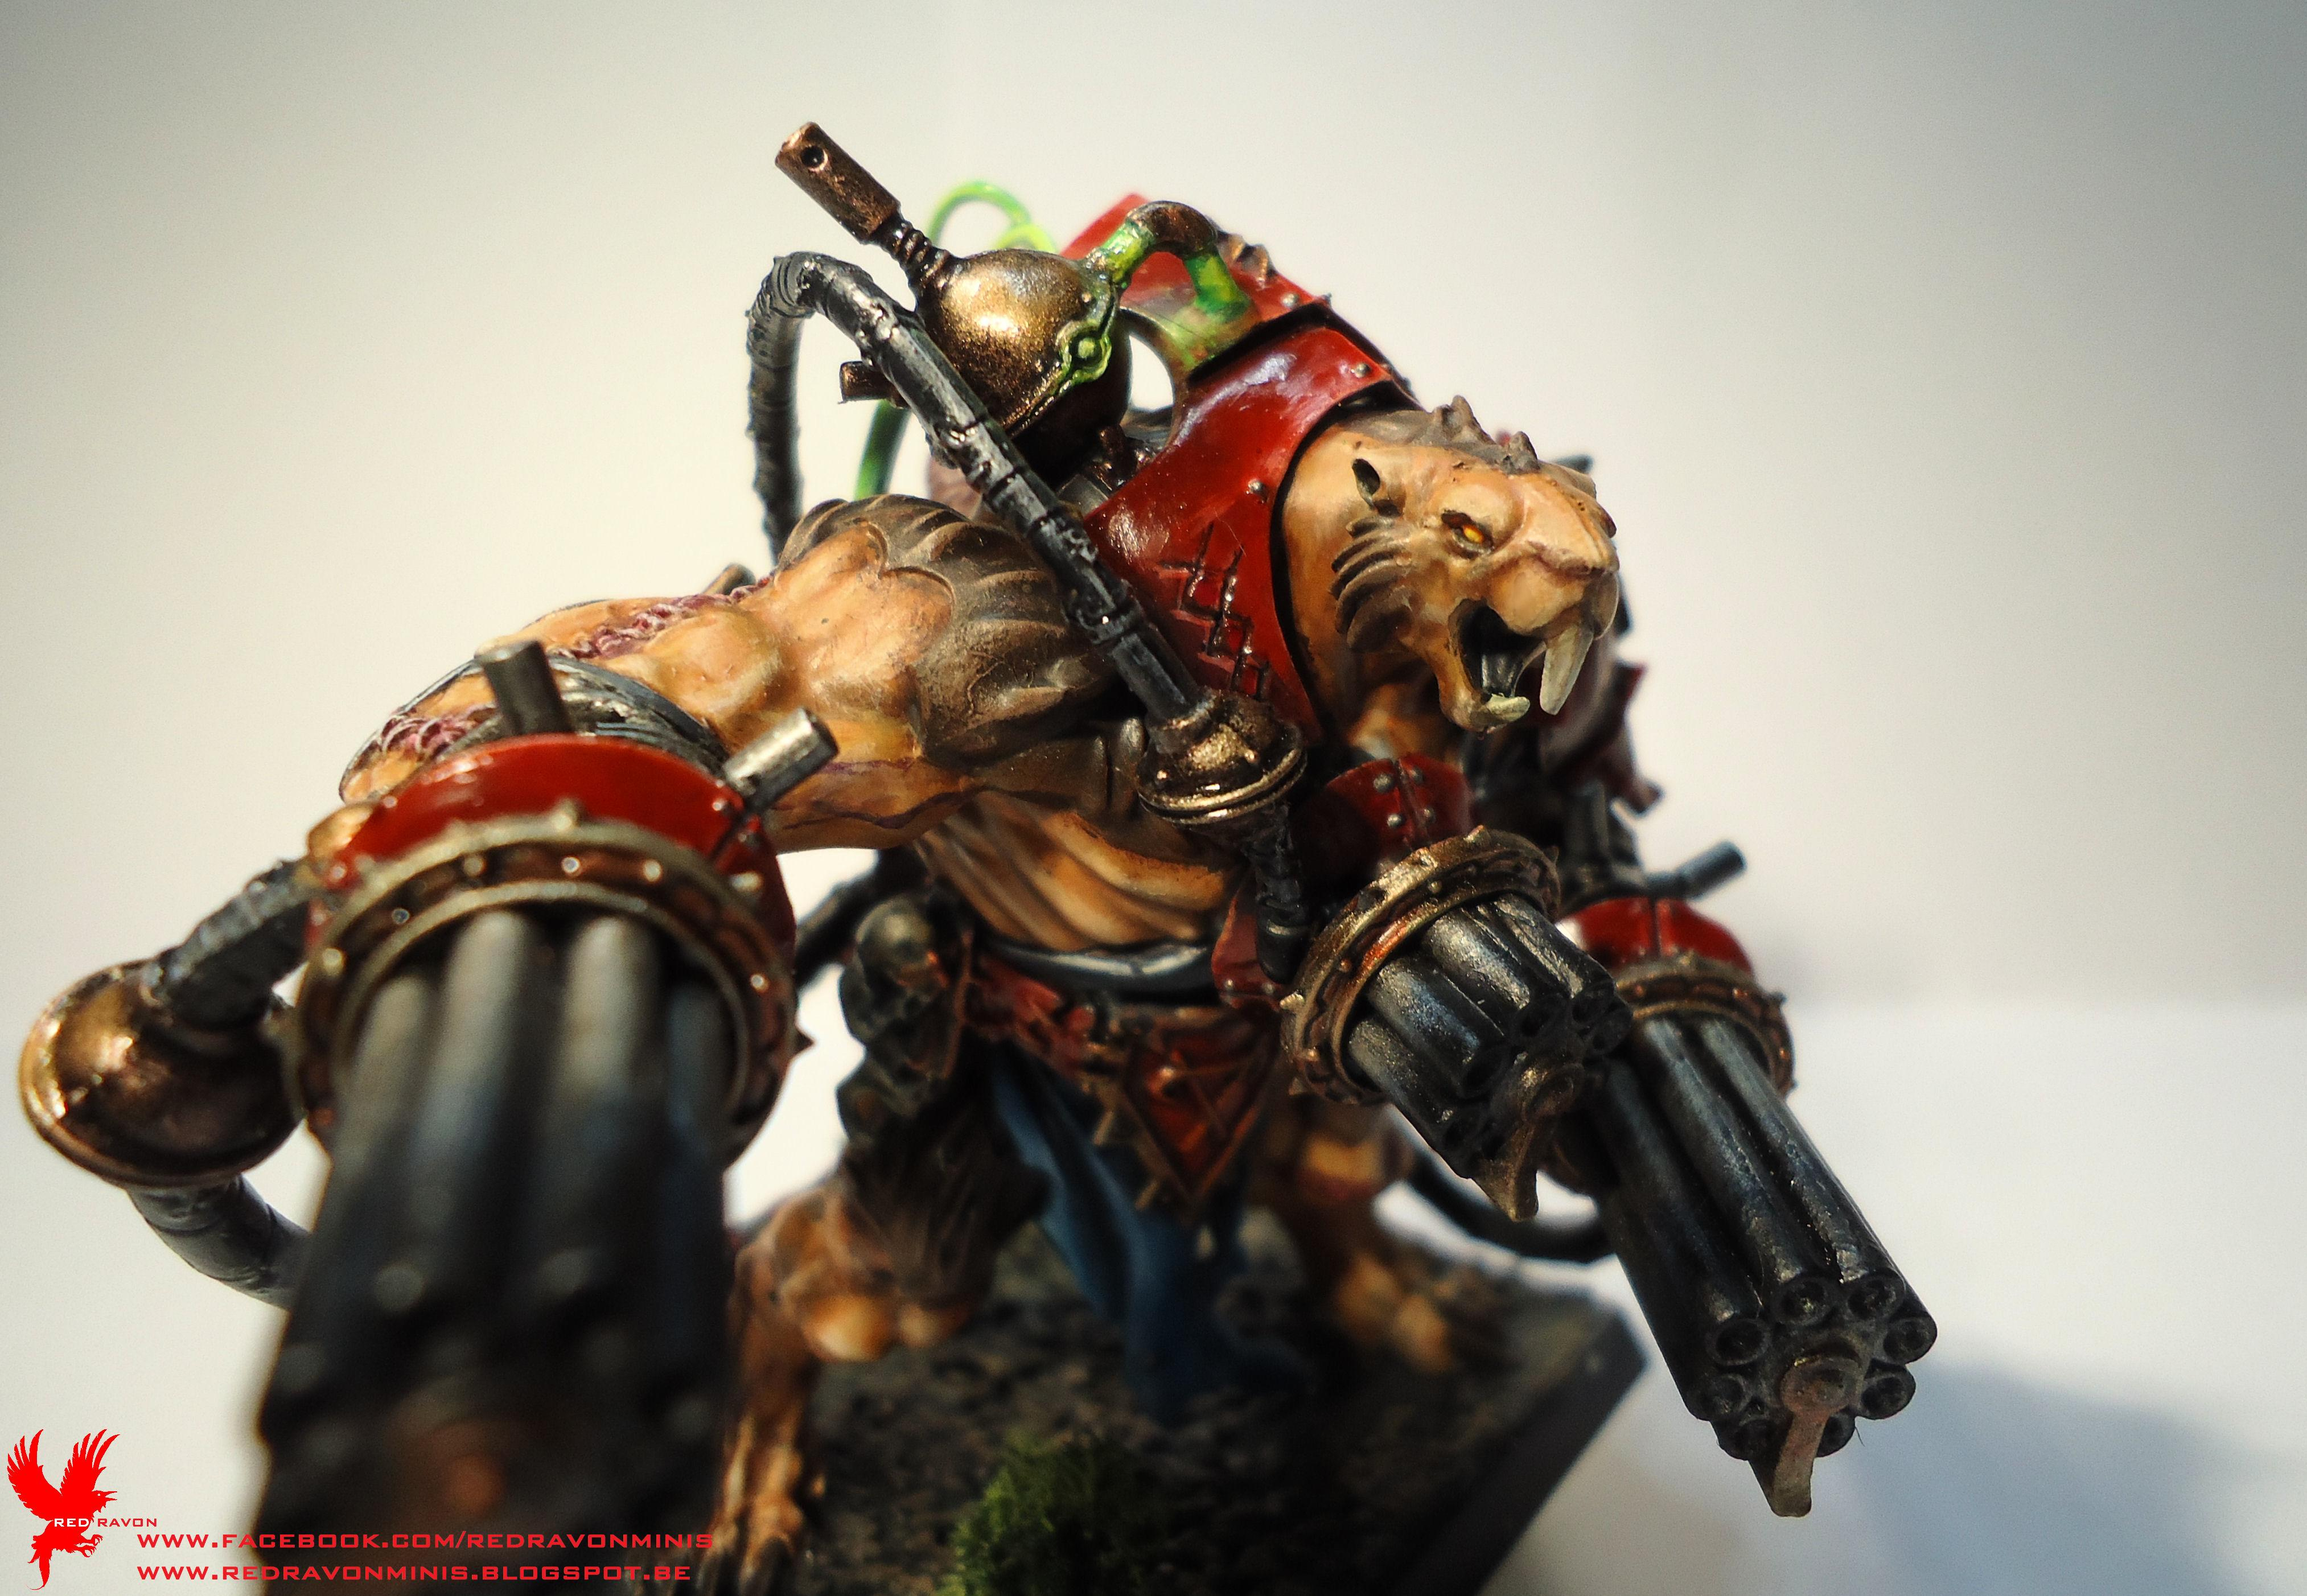 Blue Cloth, Green Tubes, Red Armour, Skaven, Stormfiend, Warhammer Fantasy